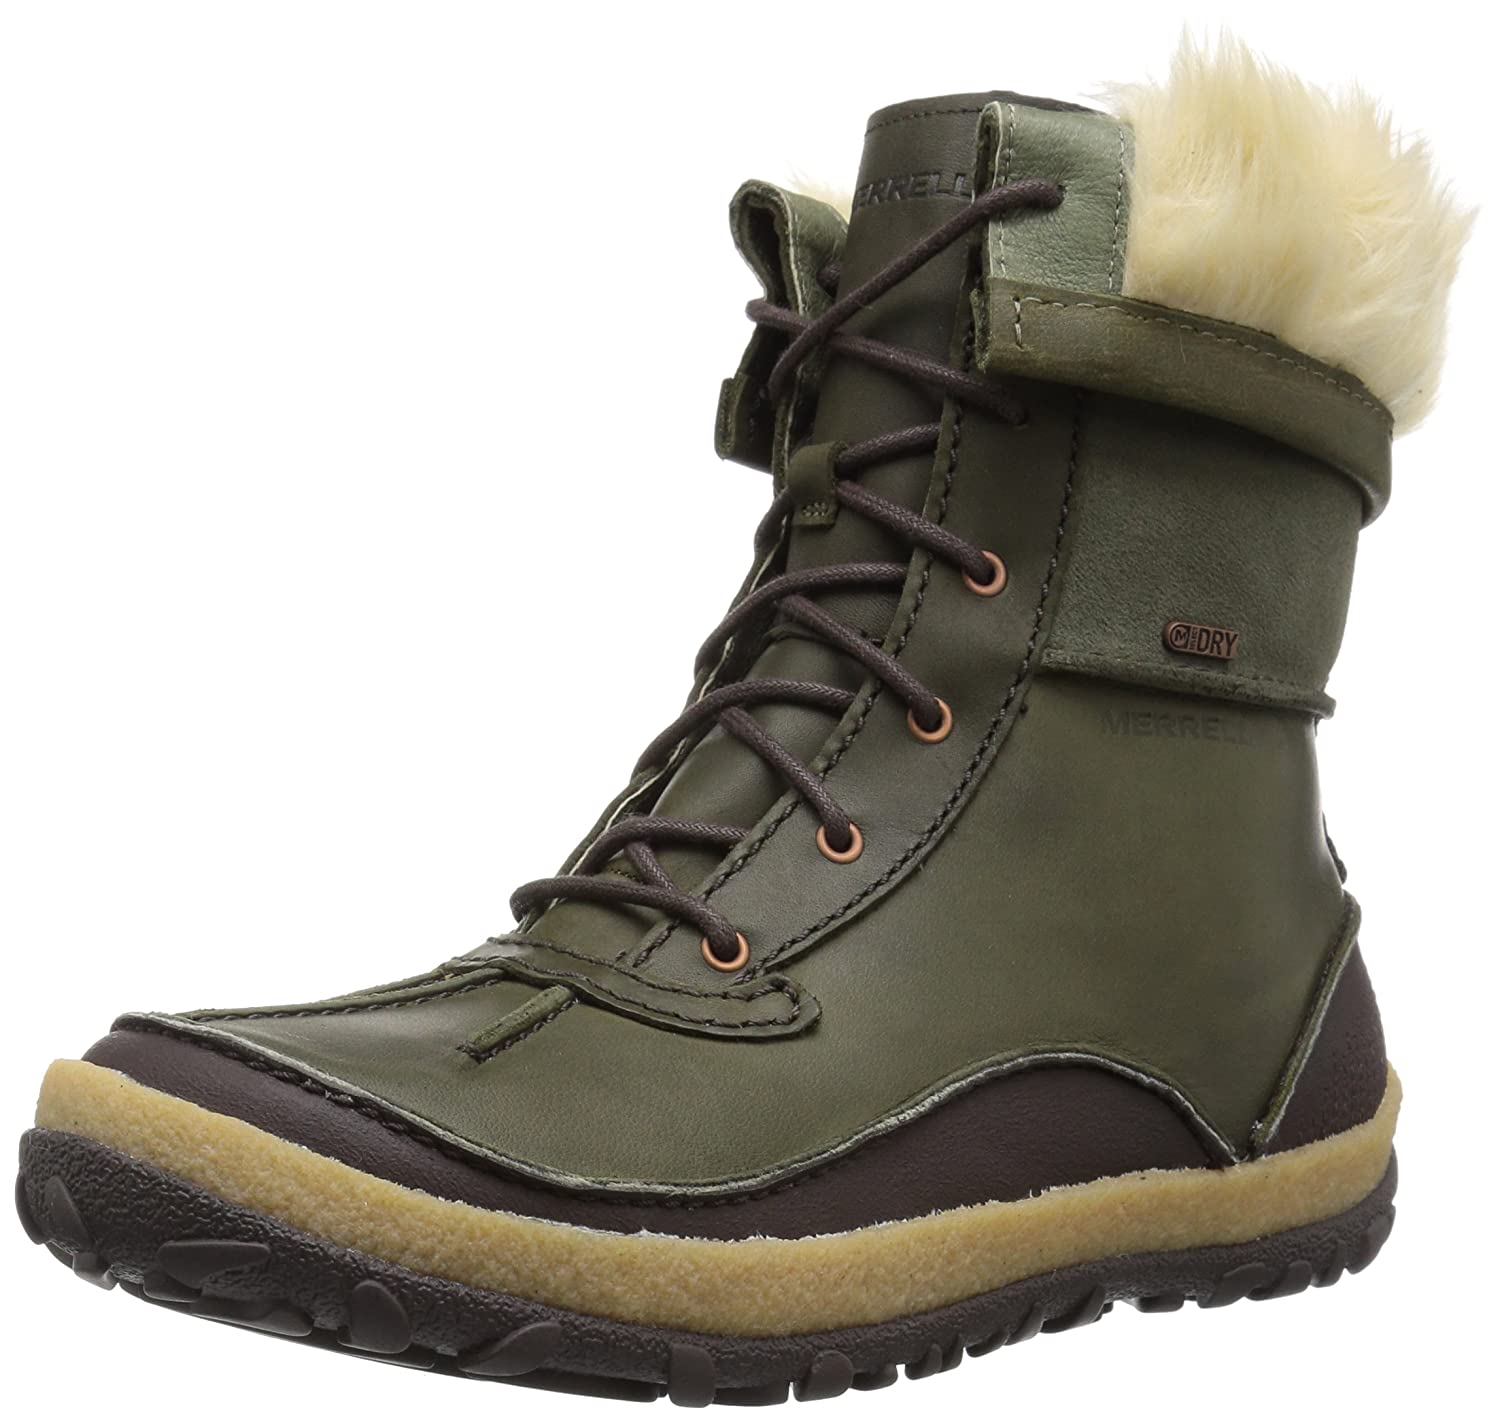 Merrell Women's Tremblant Mid Polar Waterproof Snow Boot B01N6HBYD9 7.5 B(M) US|Dusty Olive